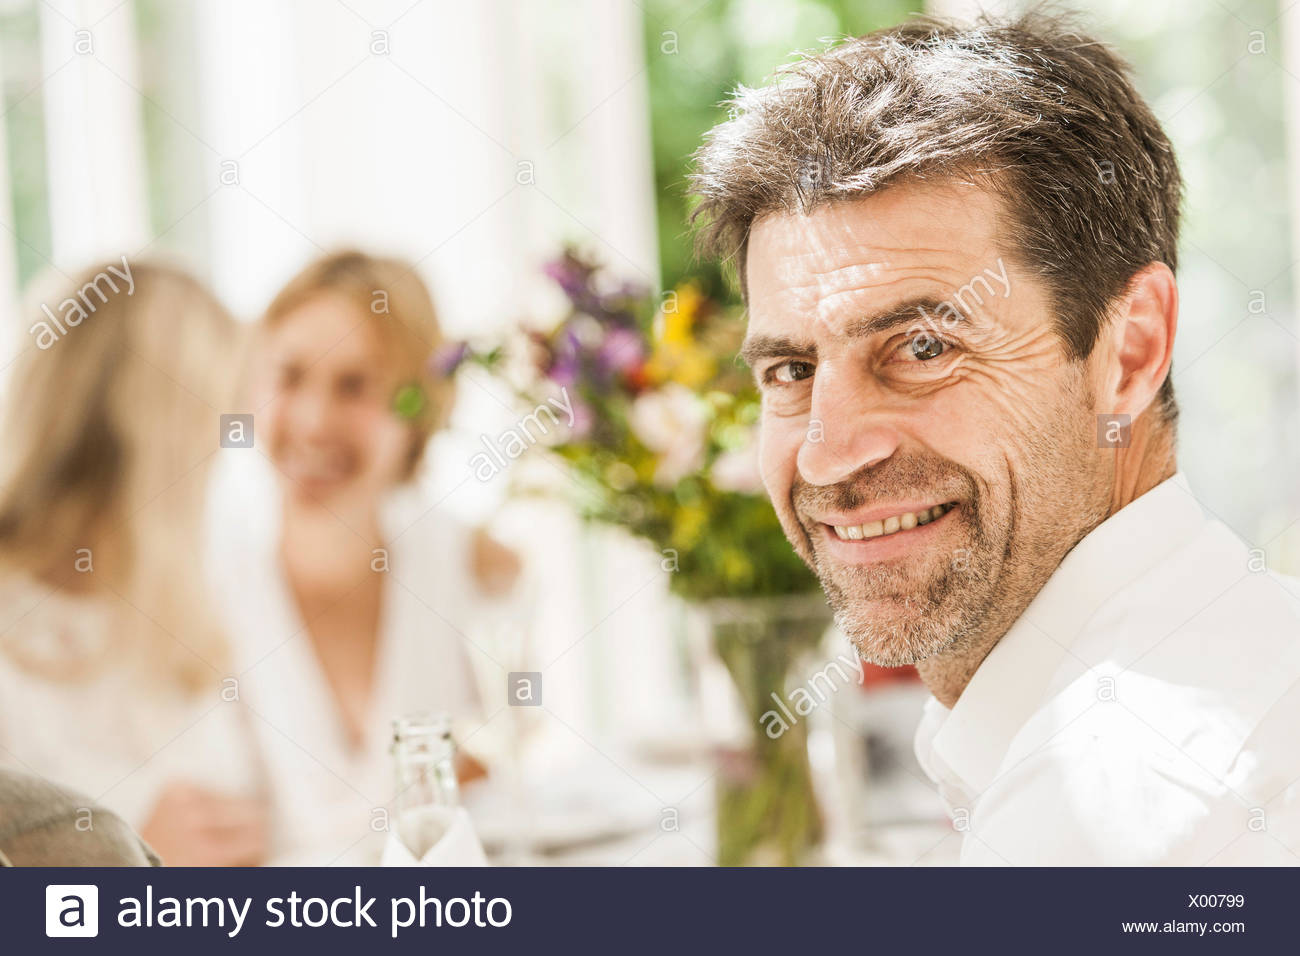 Portrait of mature man at family Birthday party Photo Stock